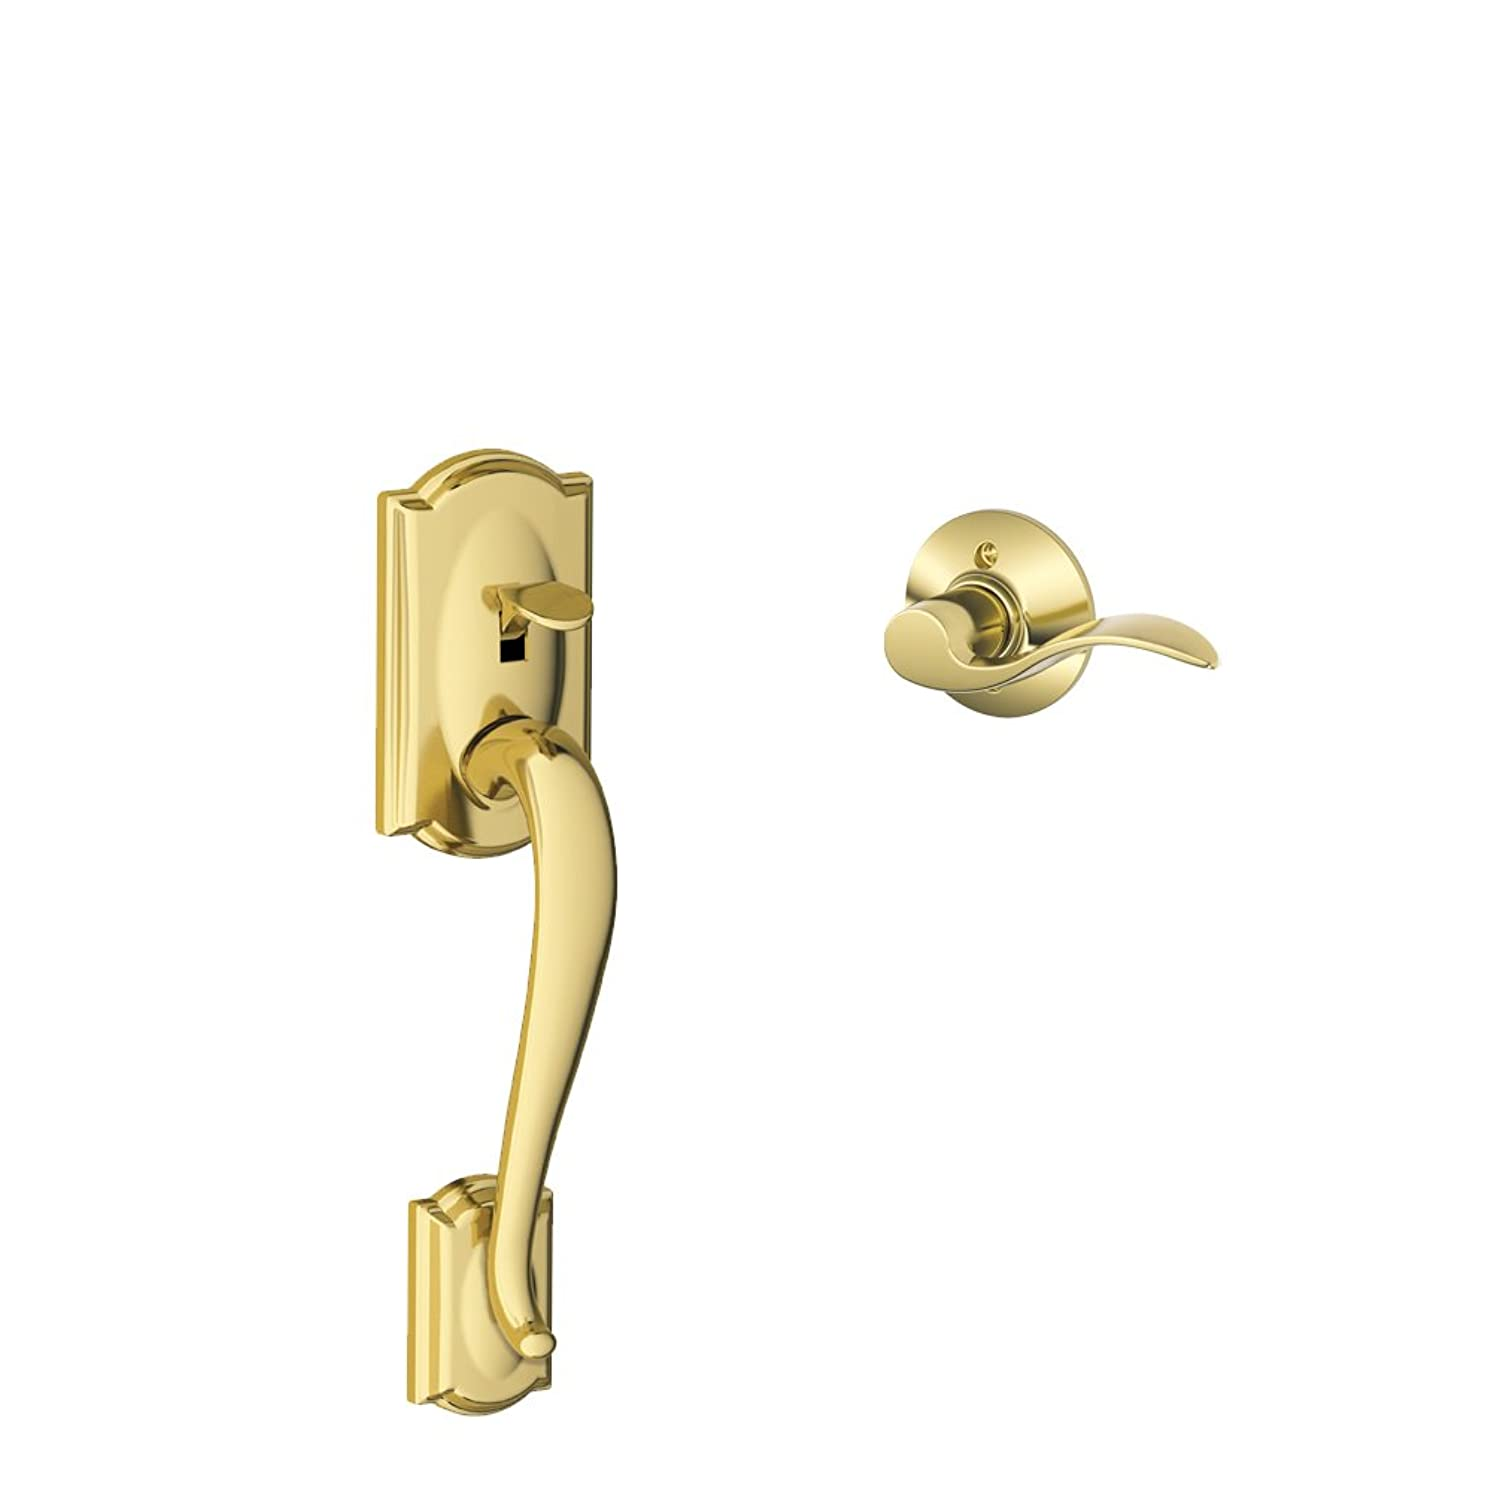 Schlage Lock Company Camelot Front Entry Handle Accent Left-Handed Interior Lever (Bright Brass) FE285 CAM 505 ACC 605 LH